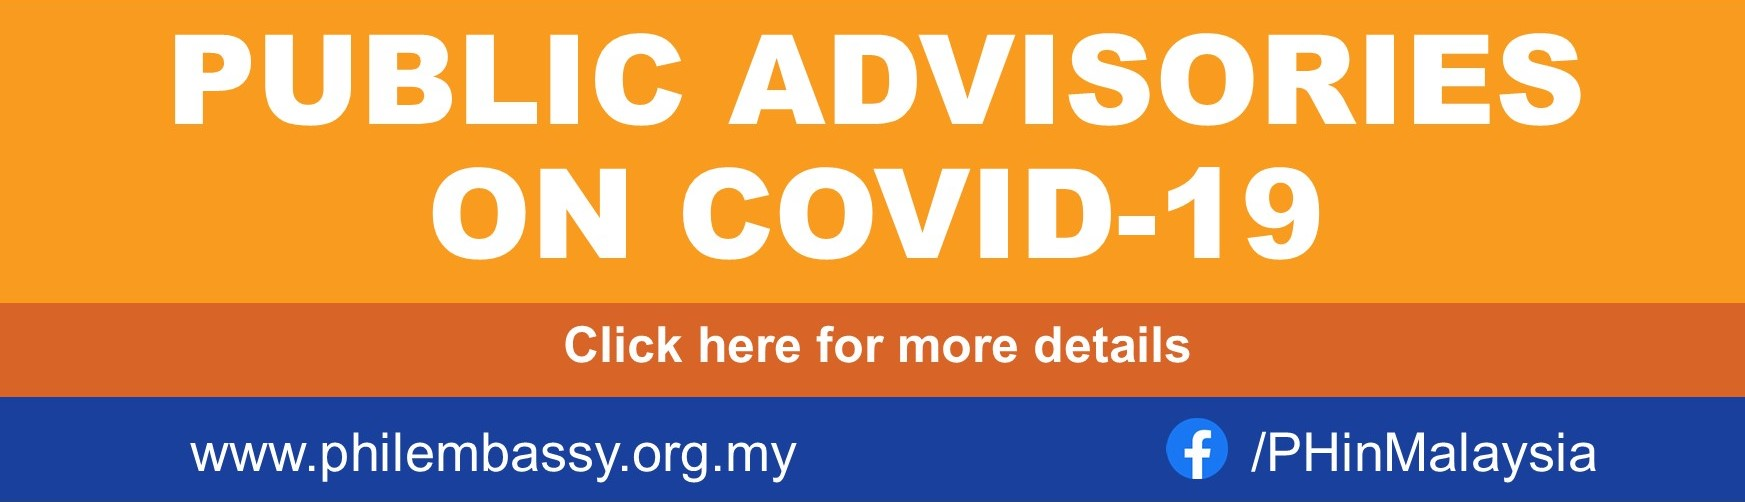 Advisories on COVID-19